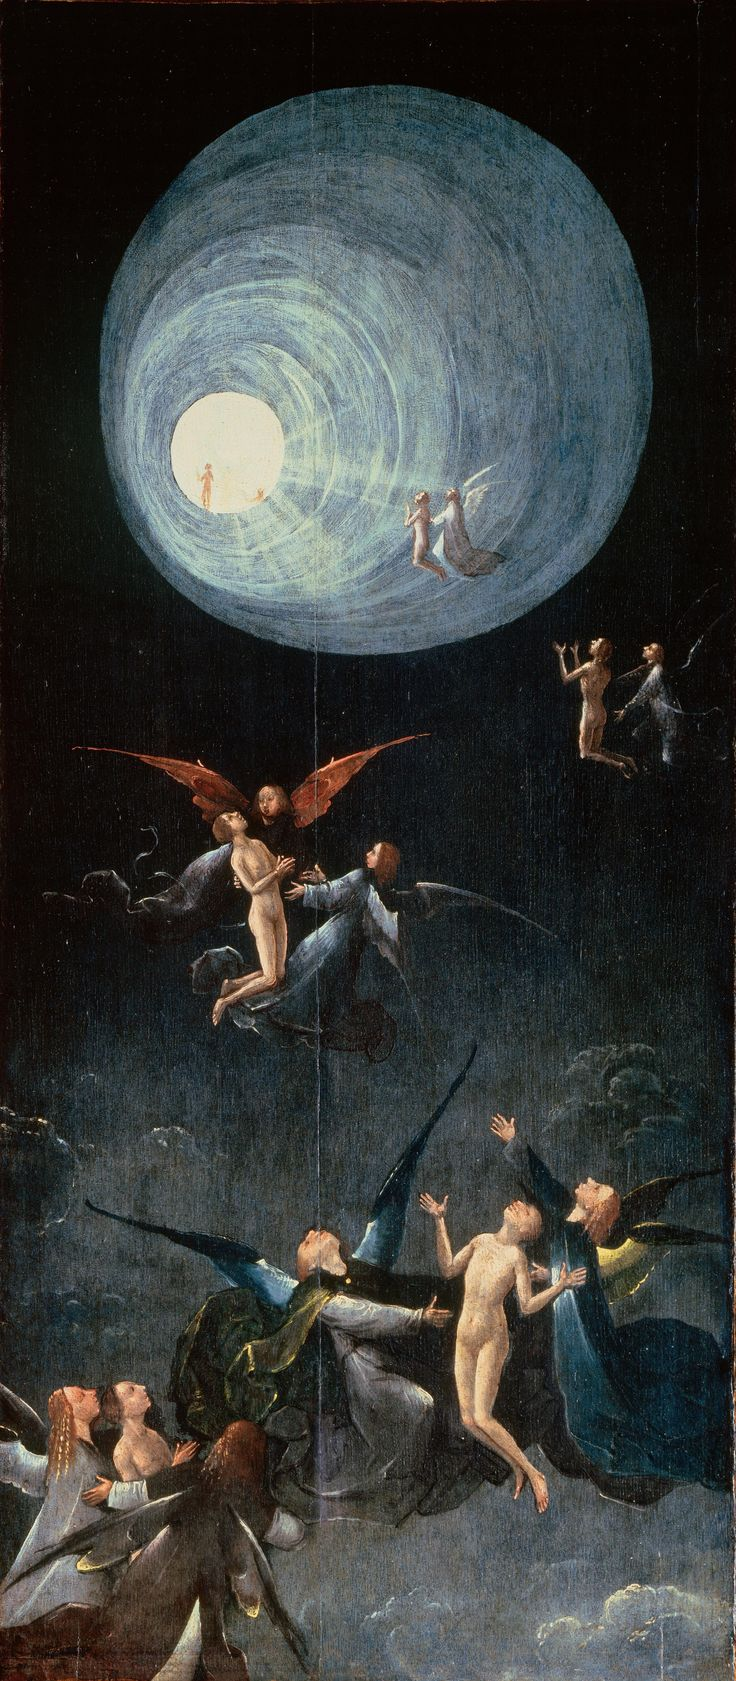 """Ascent of the Blessed,"" Hieronymus Bosch, c. 1490. ""With the help of the Getty Foundation, the Noordbrabants Museum has finally, impressively managed to bring 20 of Bosch's 25 panels home...just in time for the 500th anniversary of the artist's death."" 